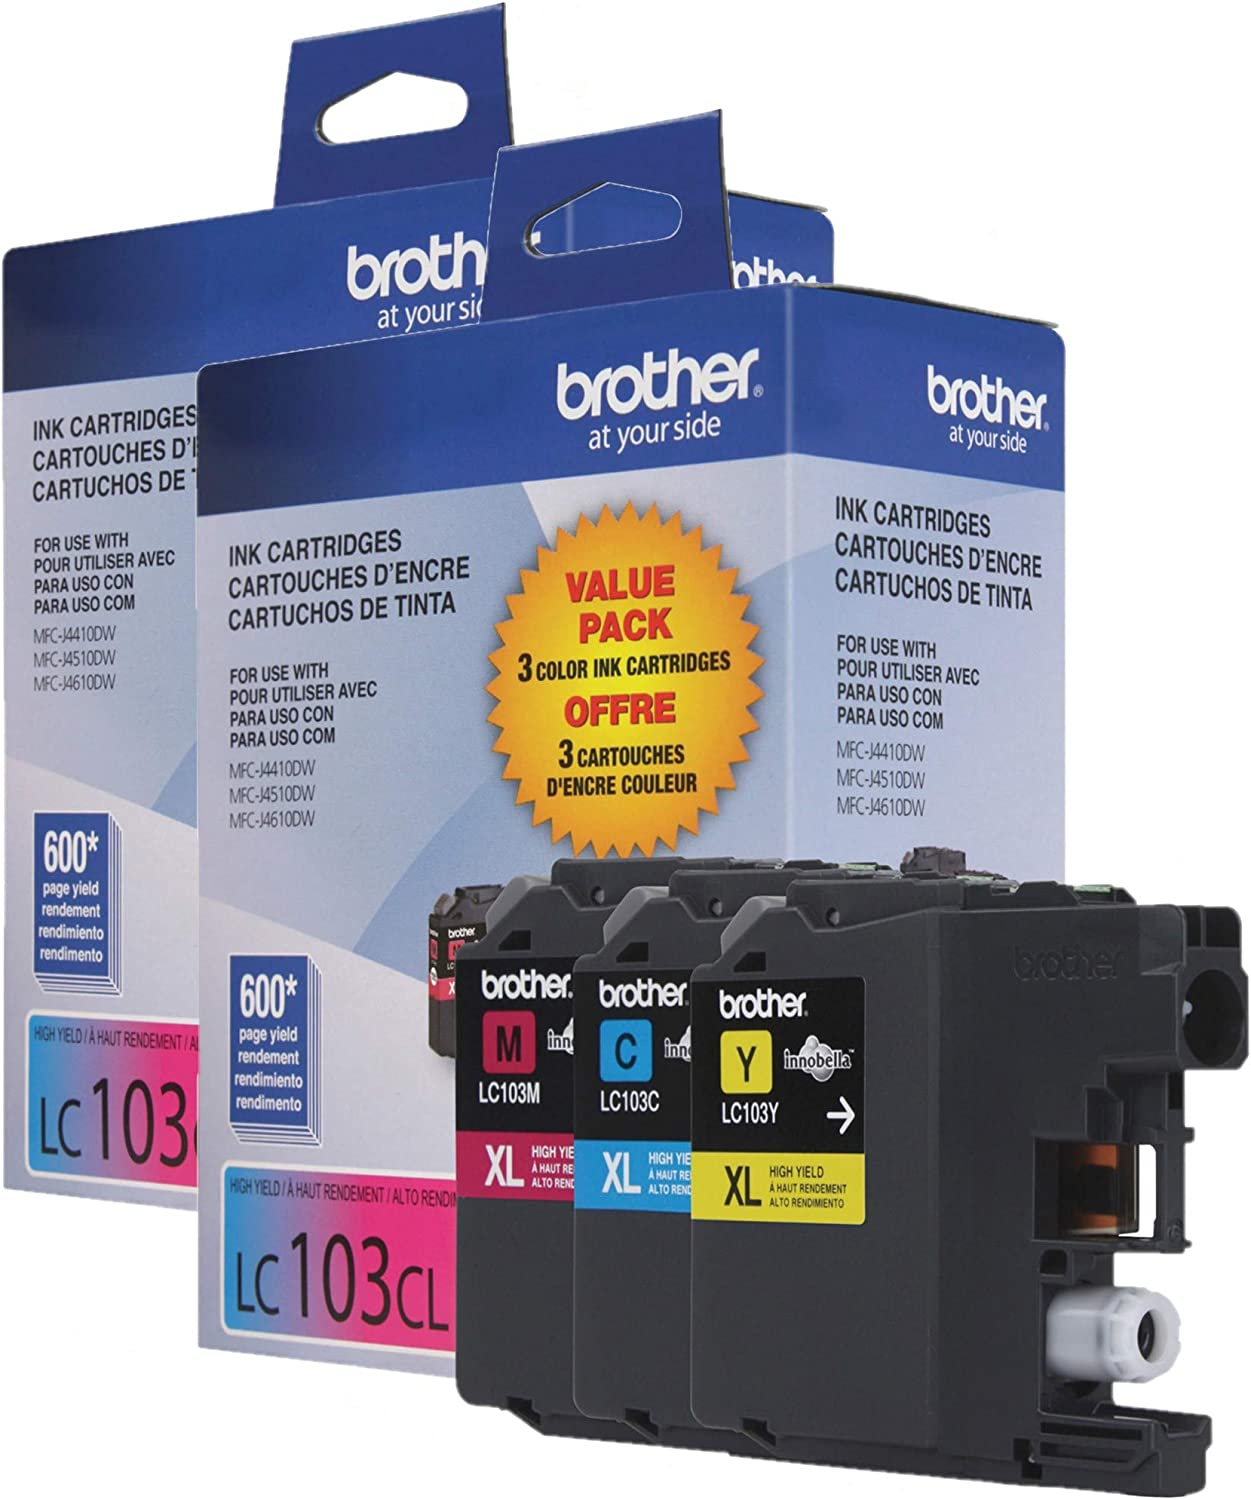 Brother Genuine High Yield Color Ink Cartridge, LC1033PKS, Replacement Color Ink Three Pack, Includes 1 Cartridge Each of Cyan, Magenta & Yellow, Page Yield Up to 600 Pages/Cartridge, LC103 / 2-Count